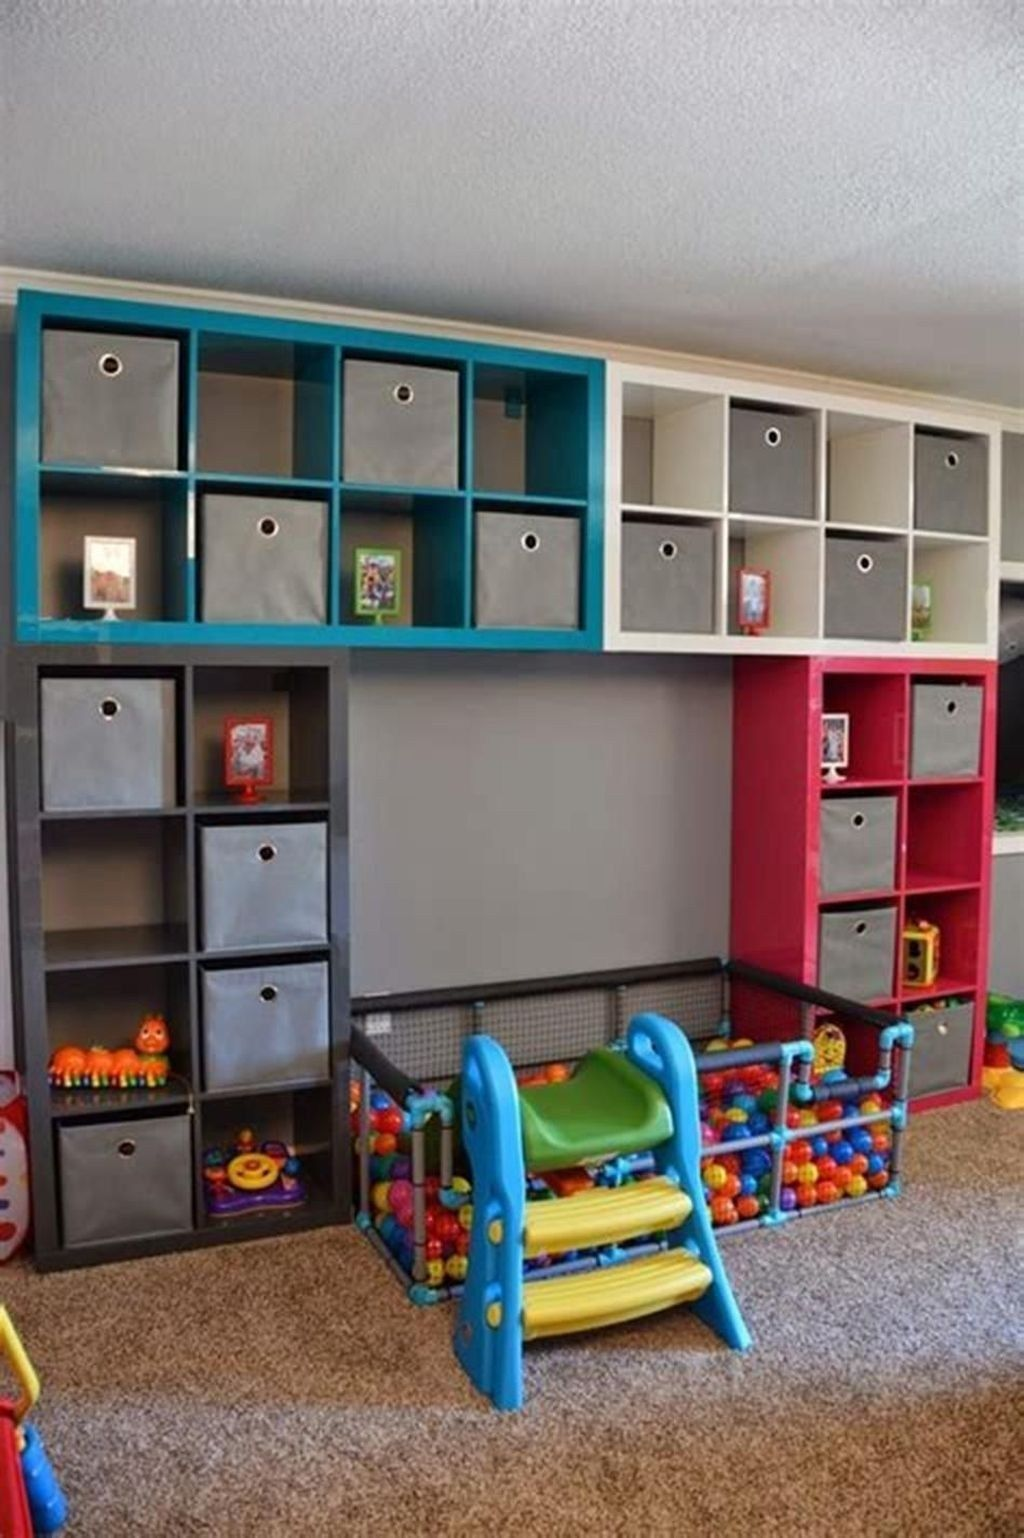 Enchanting Kids Play Room Design Ideas On A Budget 21 Ikea Kids Playroom Playroom Toy Rooms